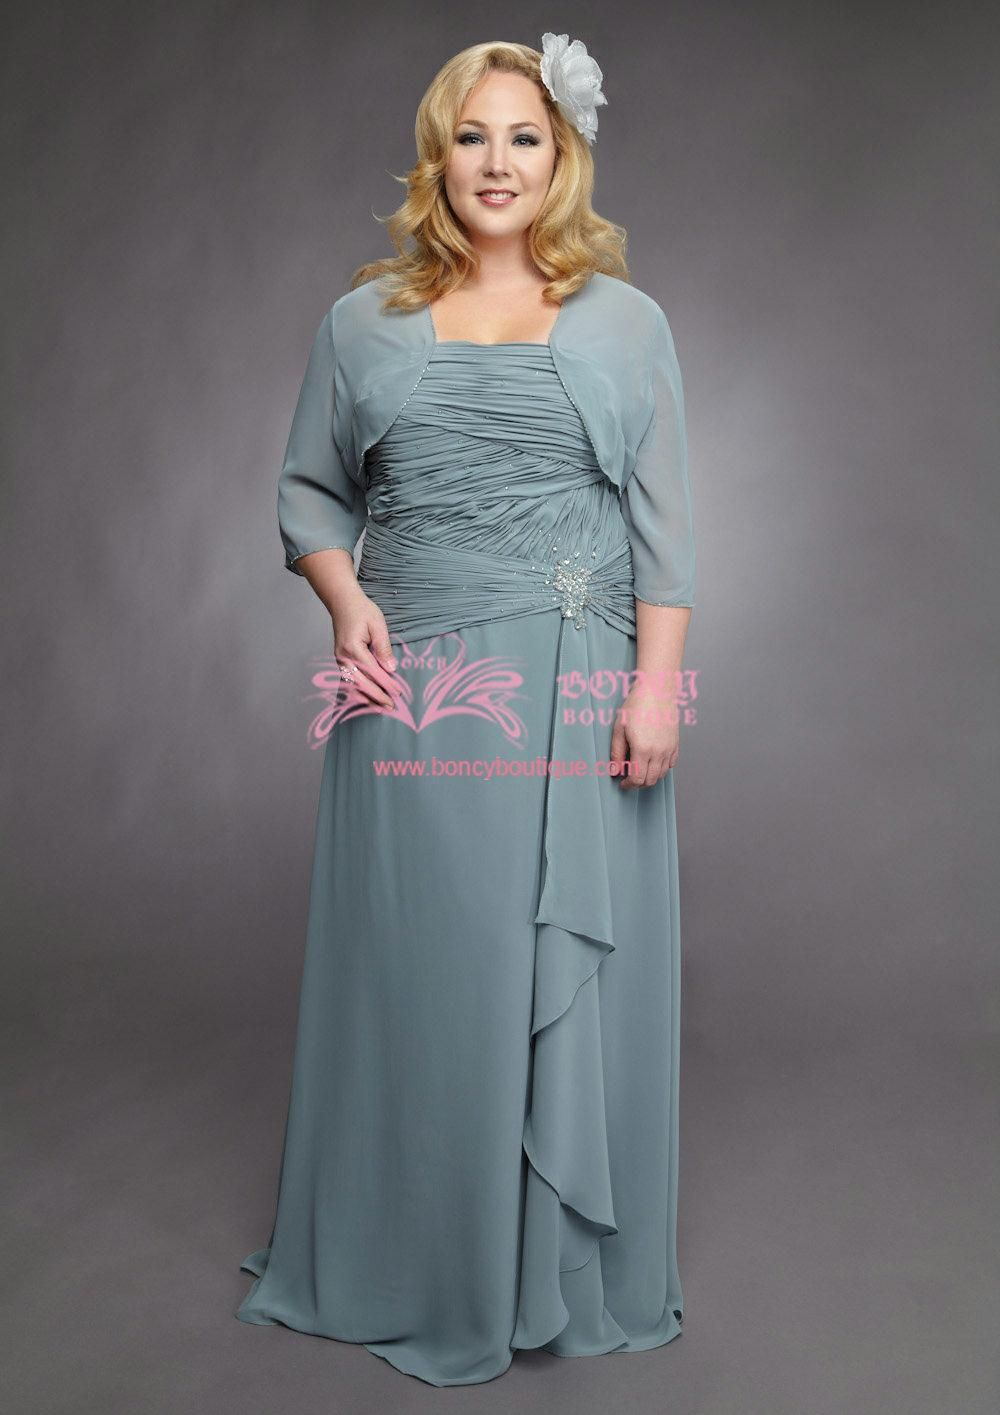 WDS050047 | Plus Size Mother of the Bride Dresses | The Big Day ...